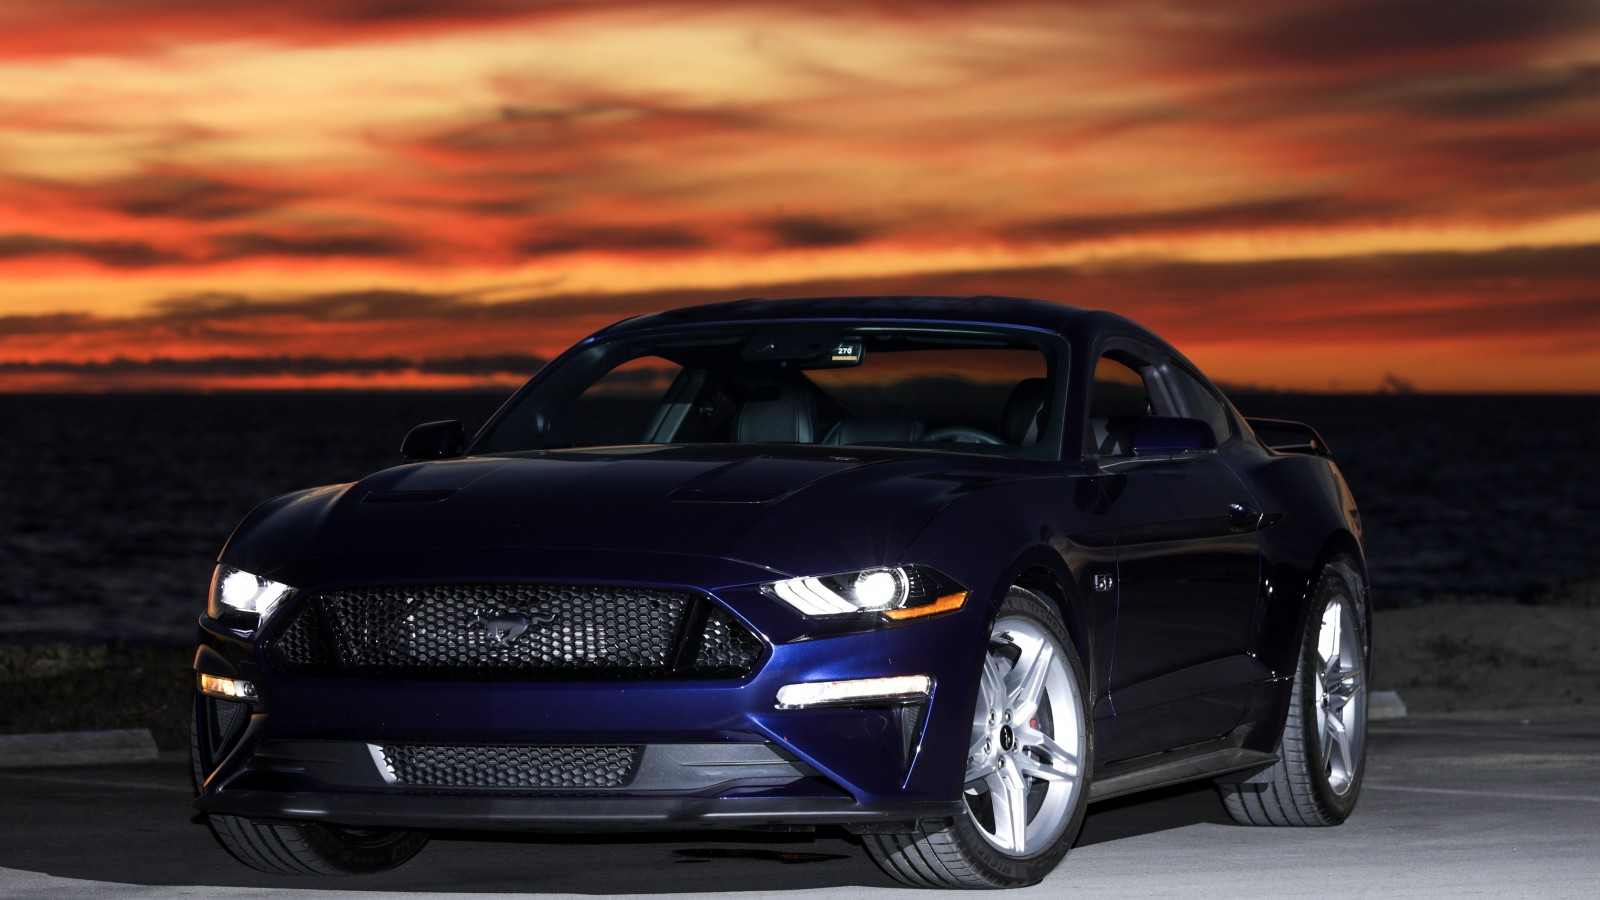 Ford Mustang Android Wallpaper